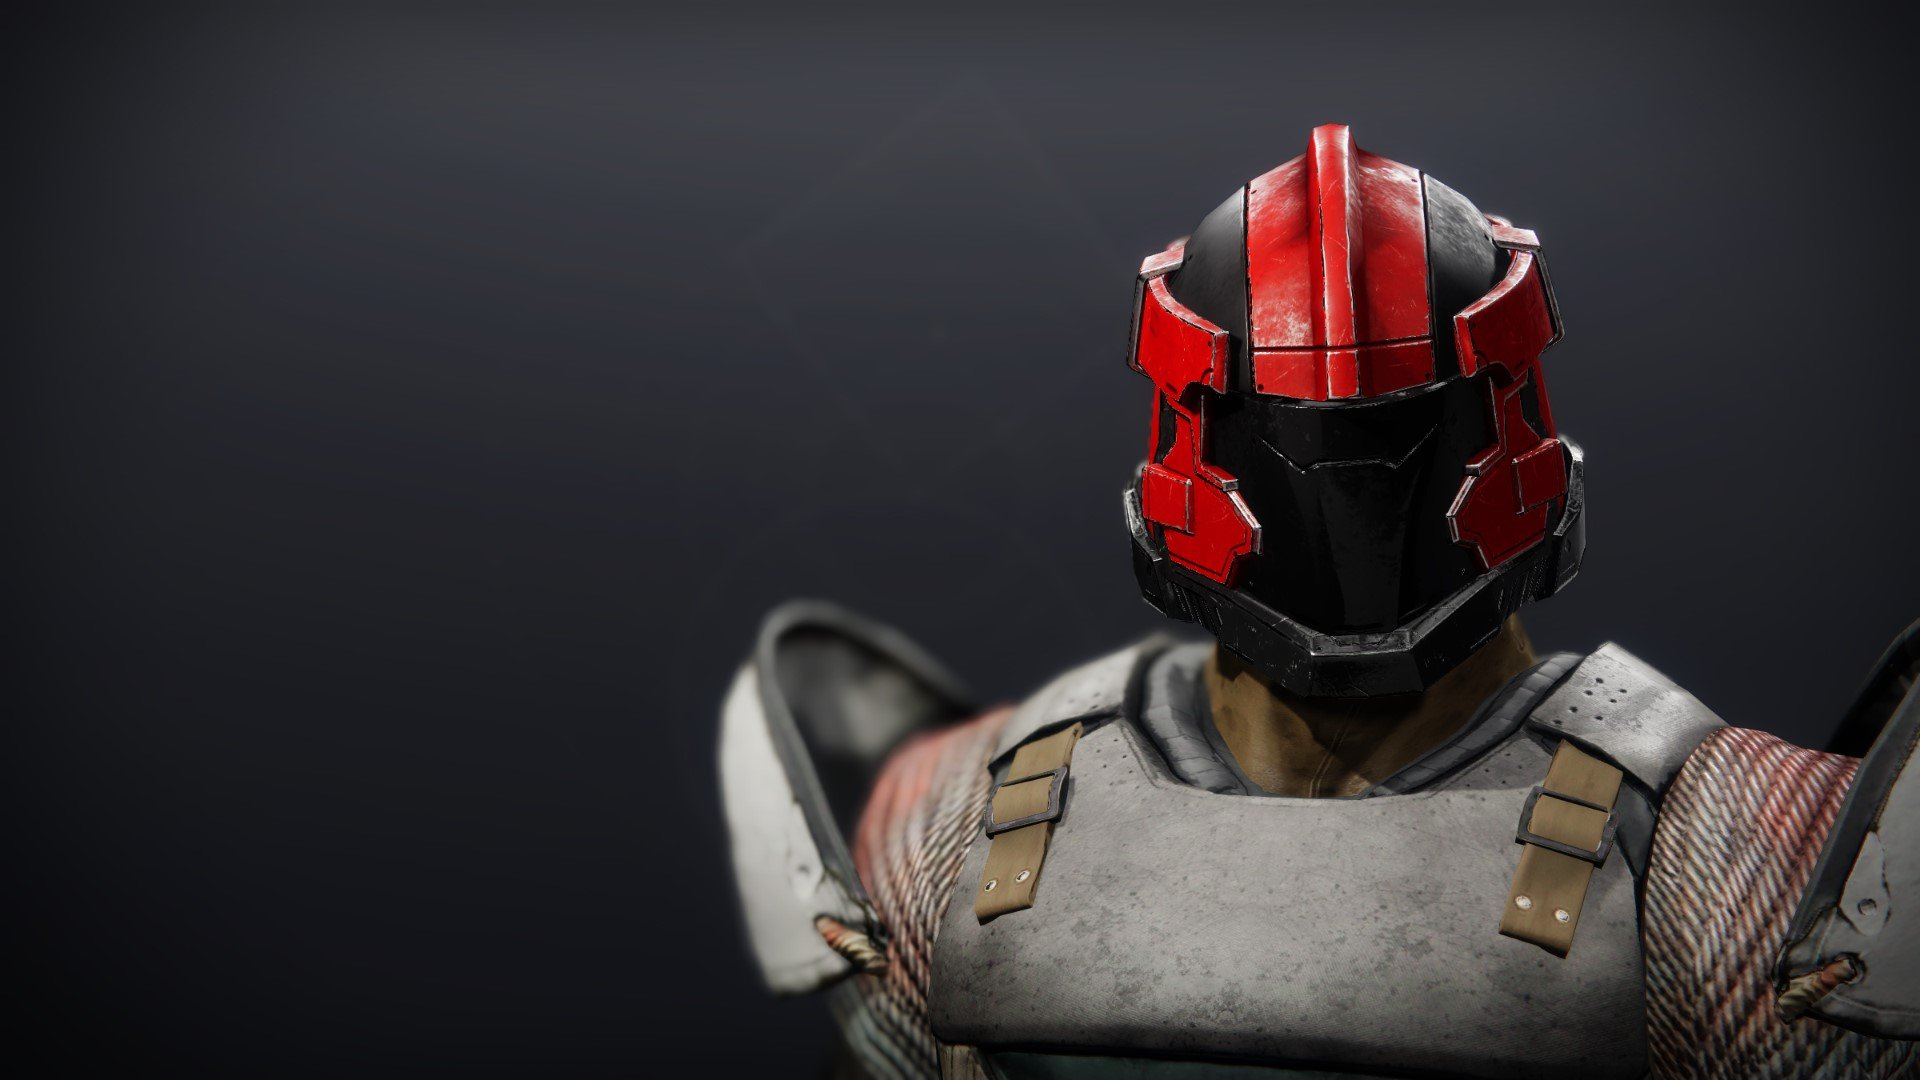 An in-game render of the Cinder Pinion Helm.